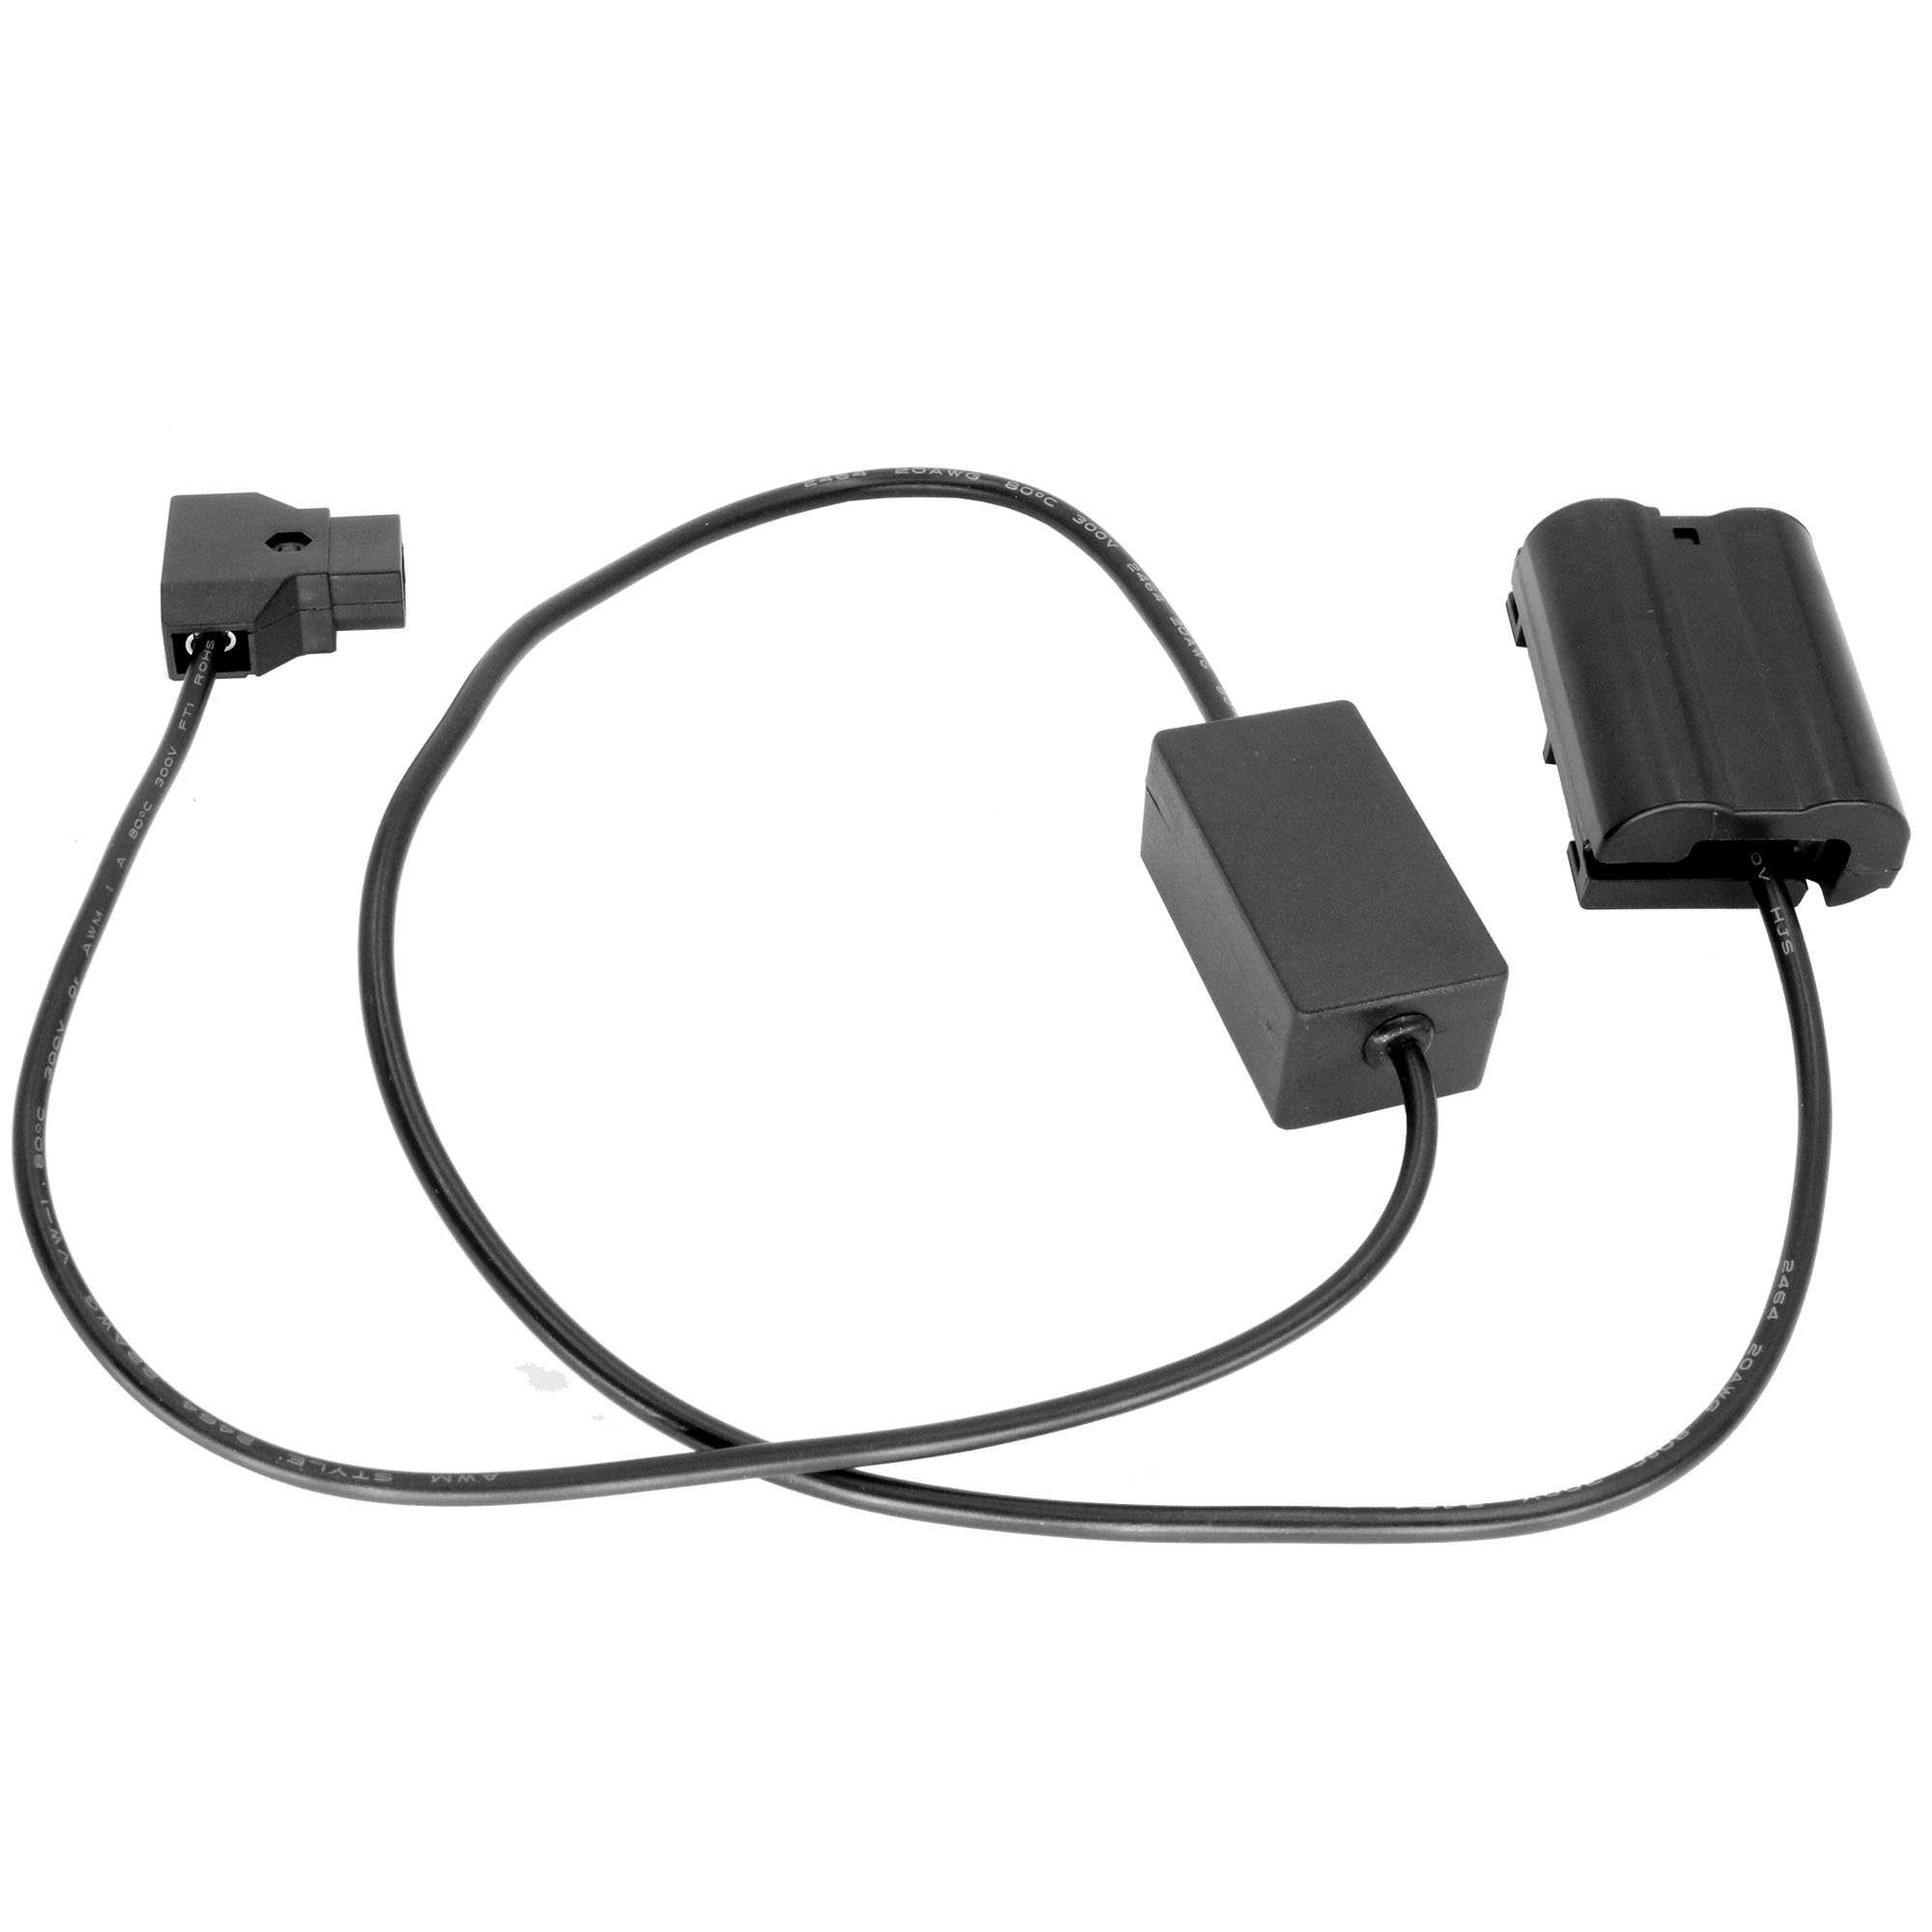 GyroVu D-TAP to NIKON EN-EL15 Dummy Battery (EP-5B) 30' Streight Intelligent Adapter Cable Compatible with Nikon 520, P530, D600, D610, D750, D7000, D7100, D800, D800E, D810, D800A, 1V1 Cameras